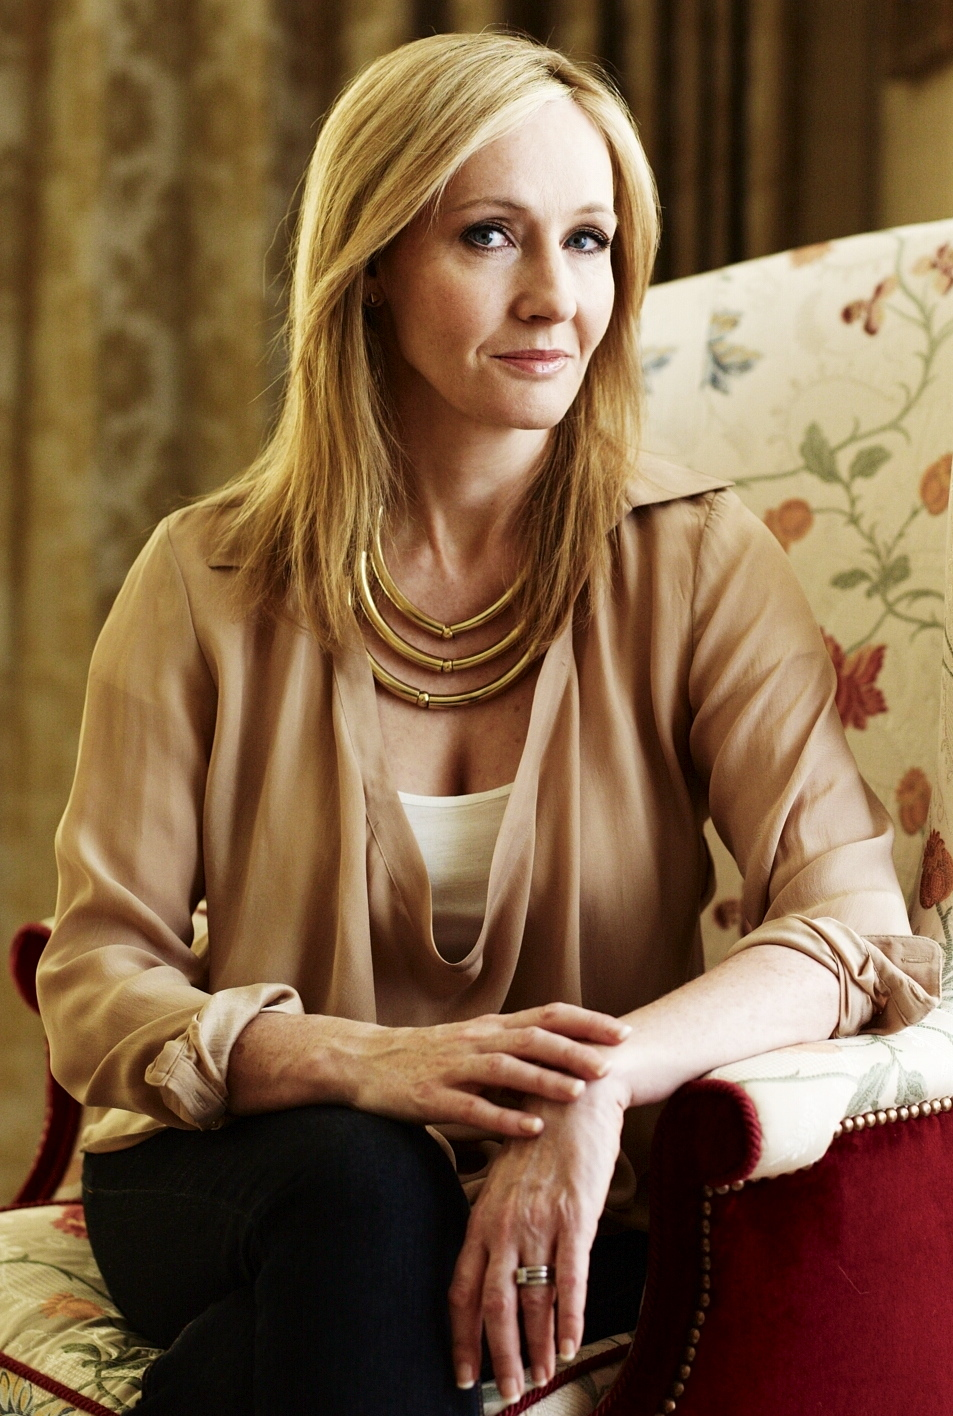 J.K. Rowling: the hands & handprints of the UK author! (Harry Potter) Jk-rowling-official-portrait